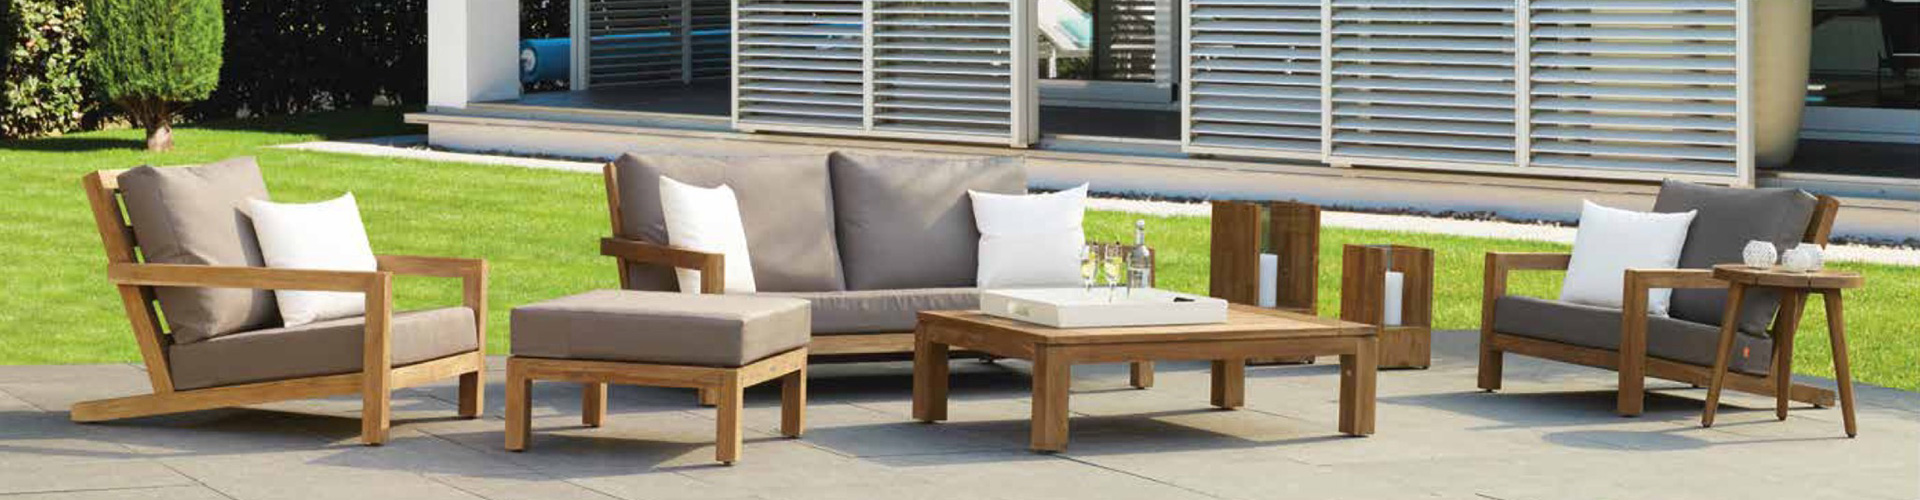 expo garden outdoor furniture - Garden Furniture Lebanon